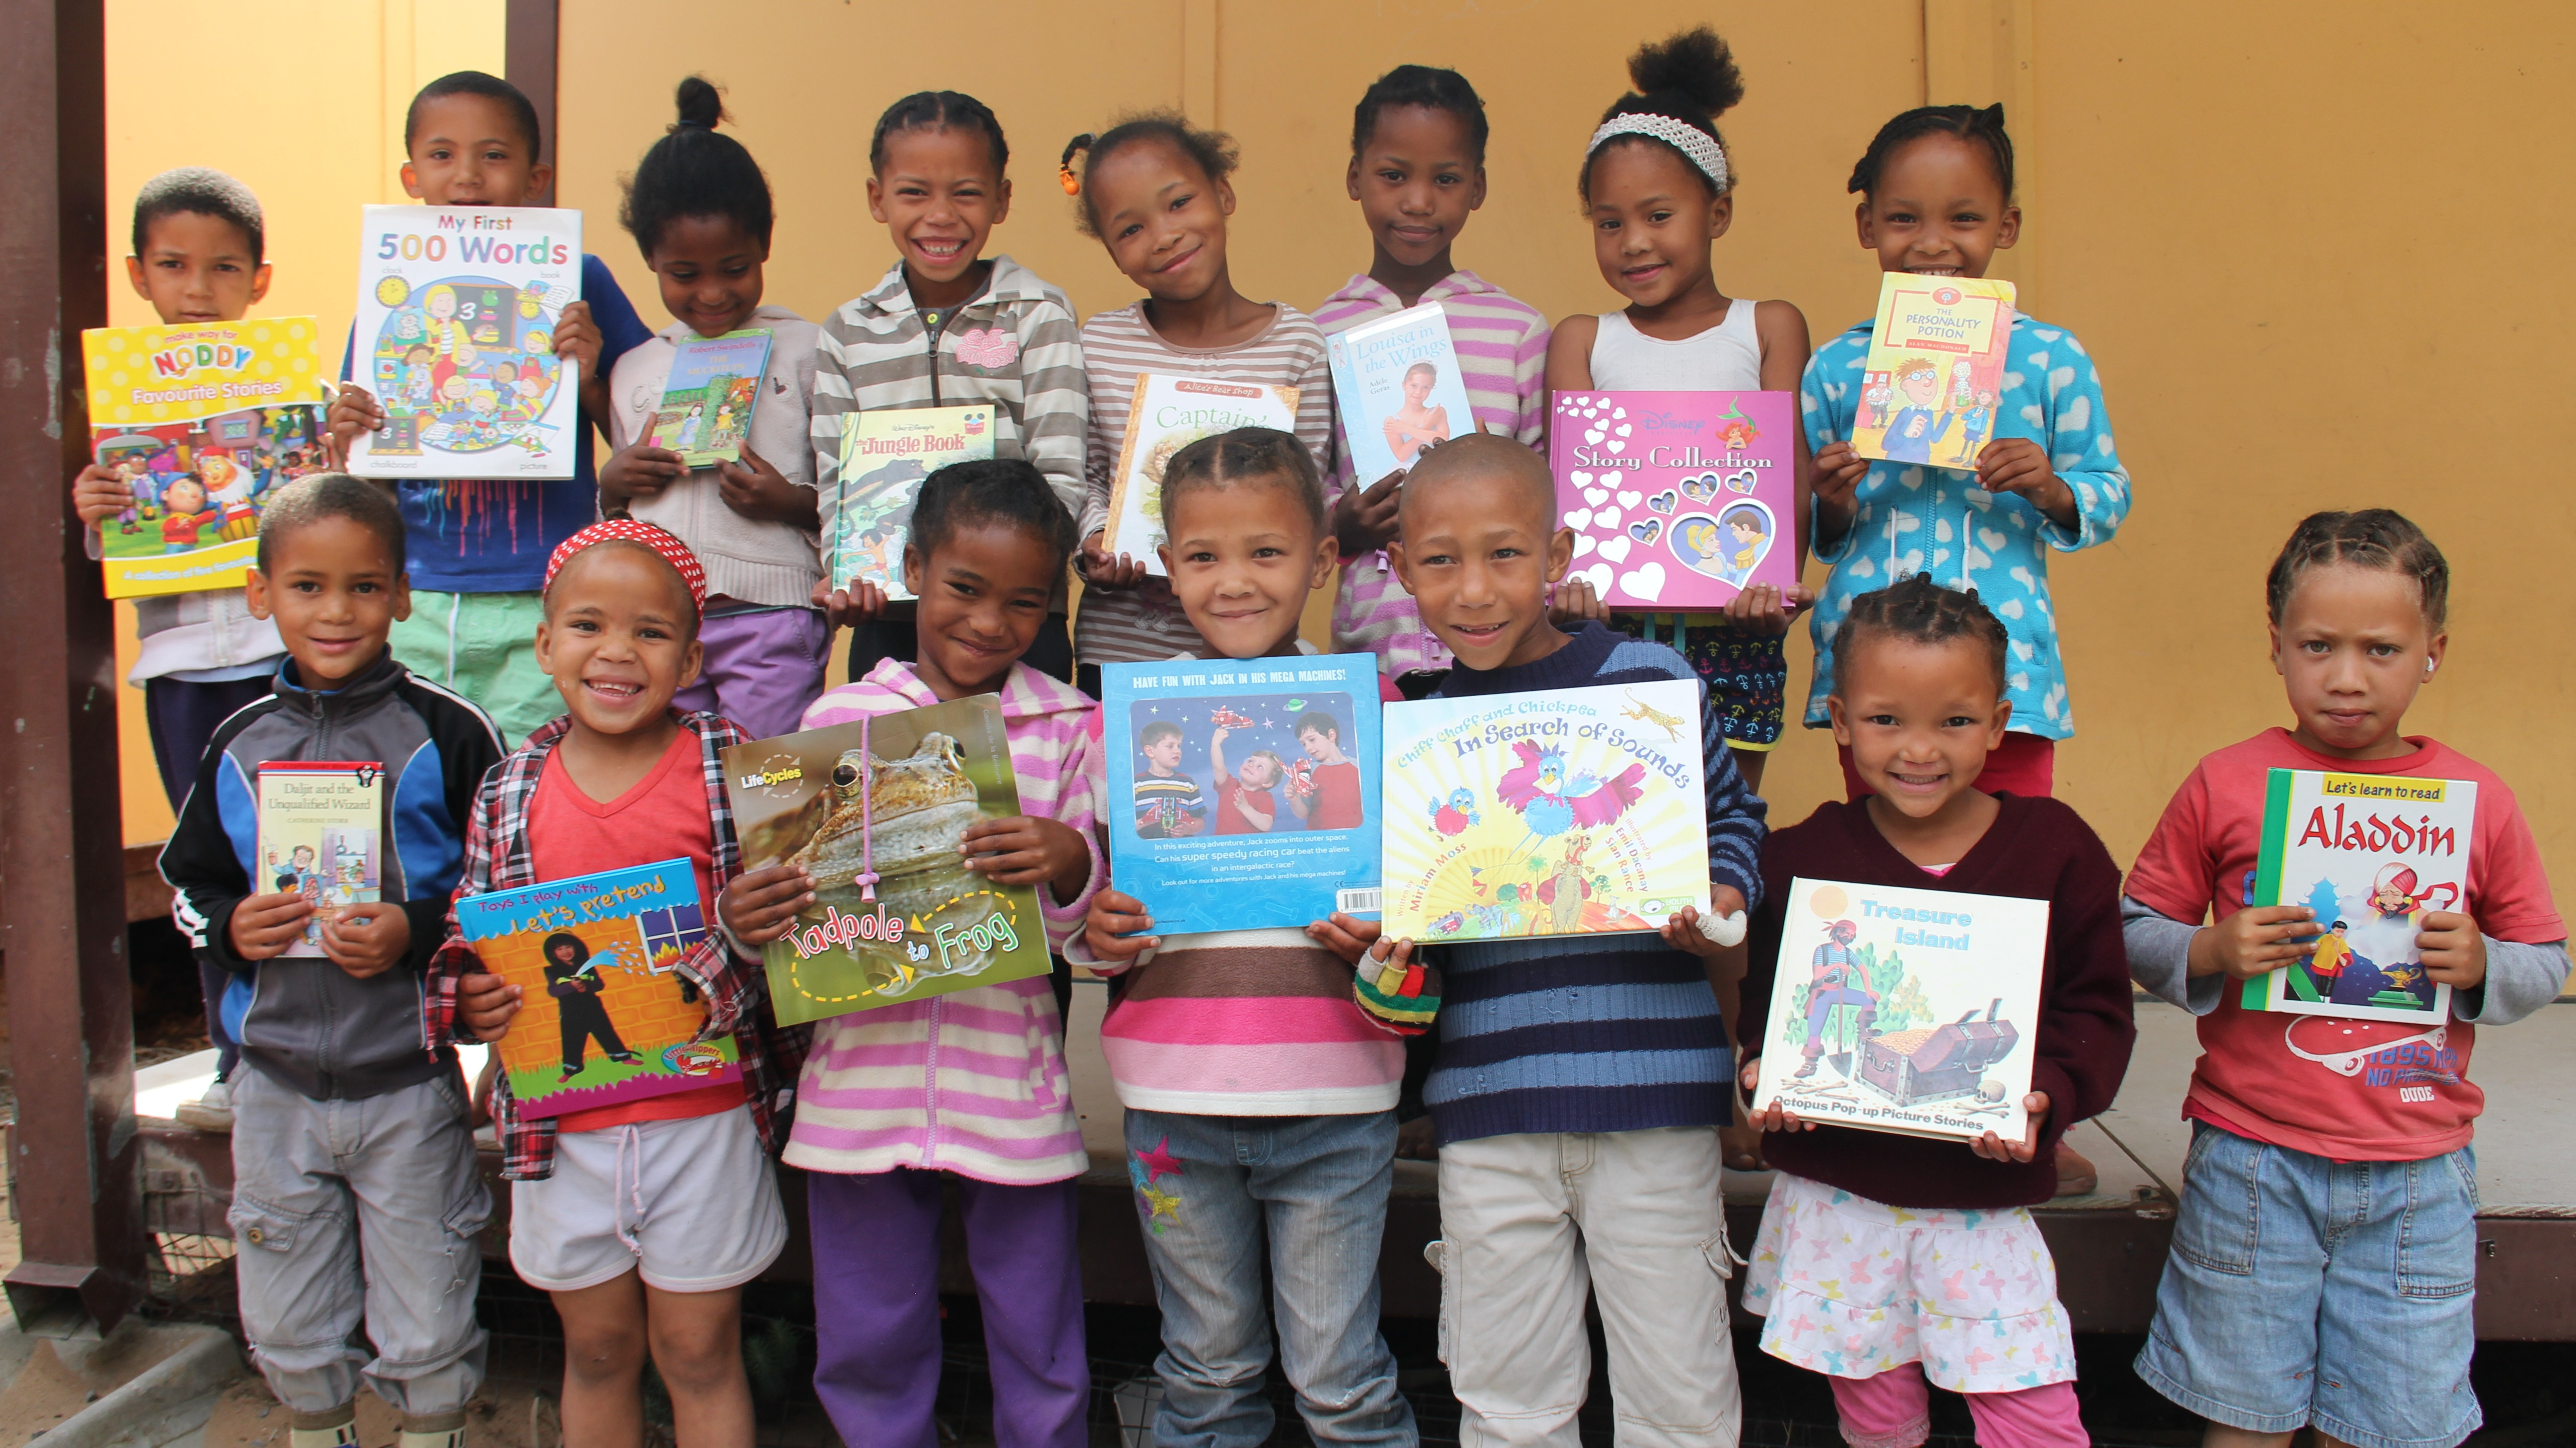 Yorkshire Schools Invited To Donate Books To South African